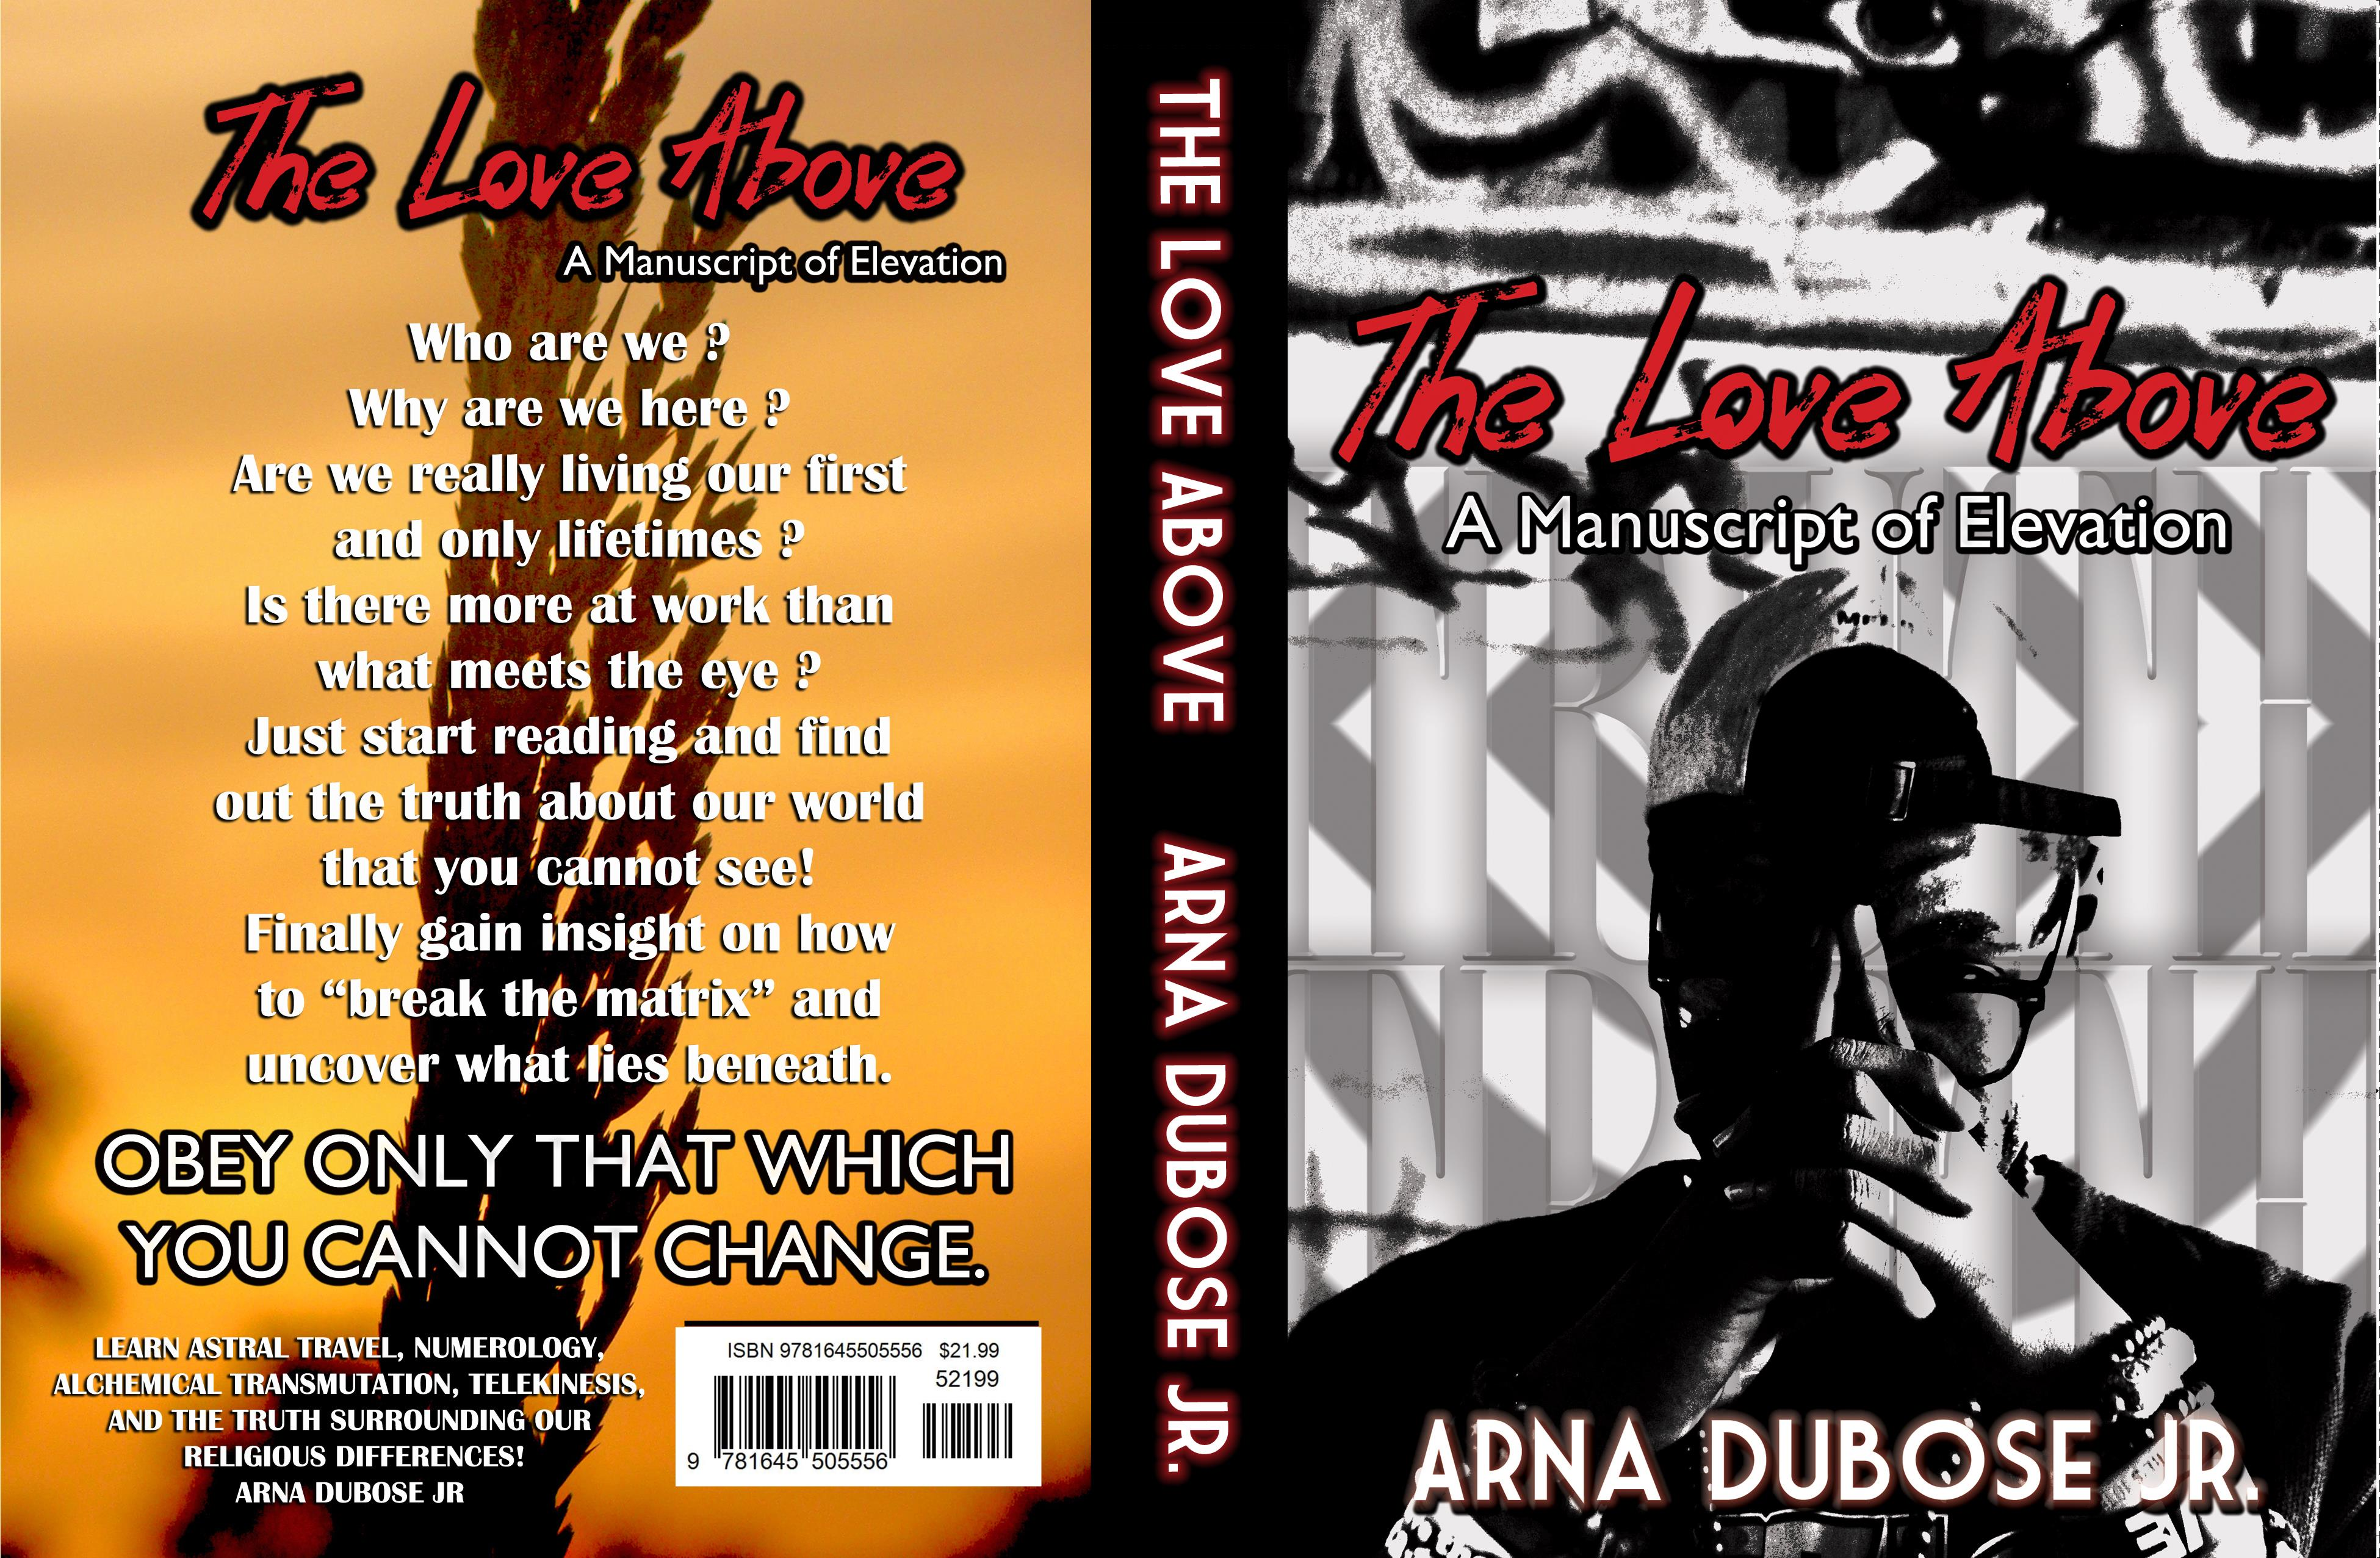 The Love Above cover image